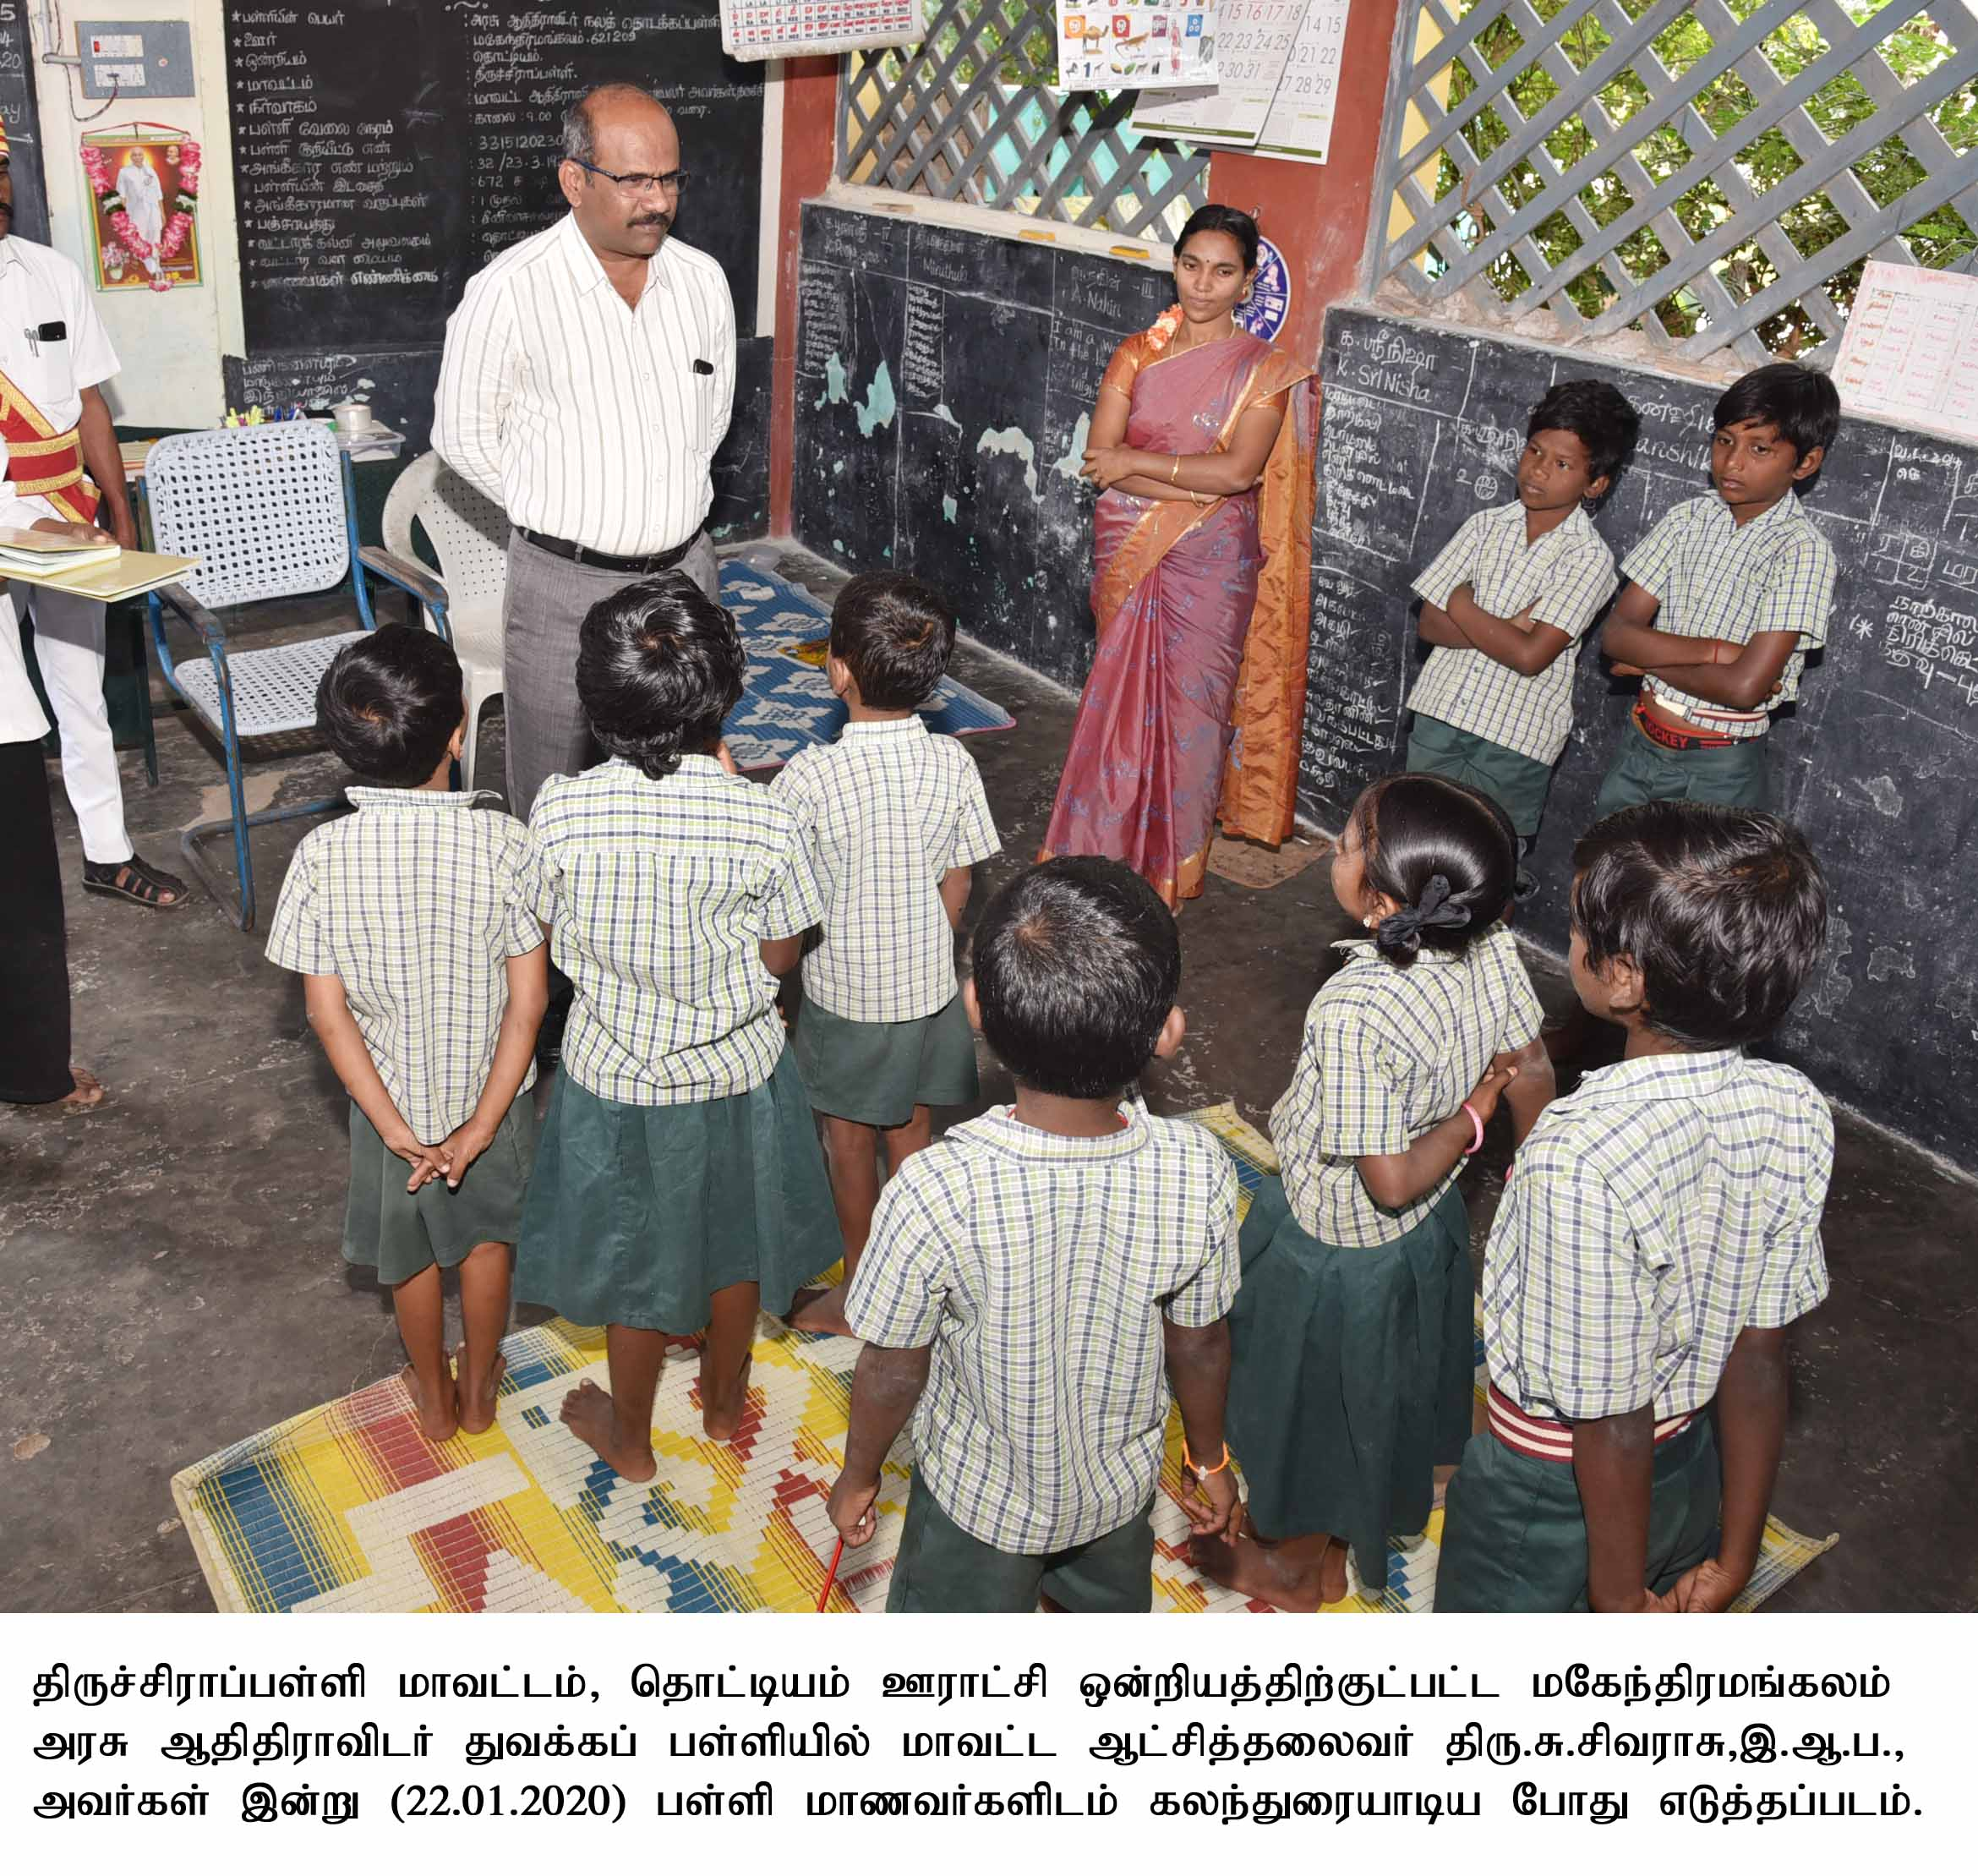 District Collector Inspected the ADW School at Thottiyam Block